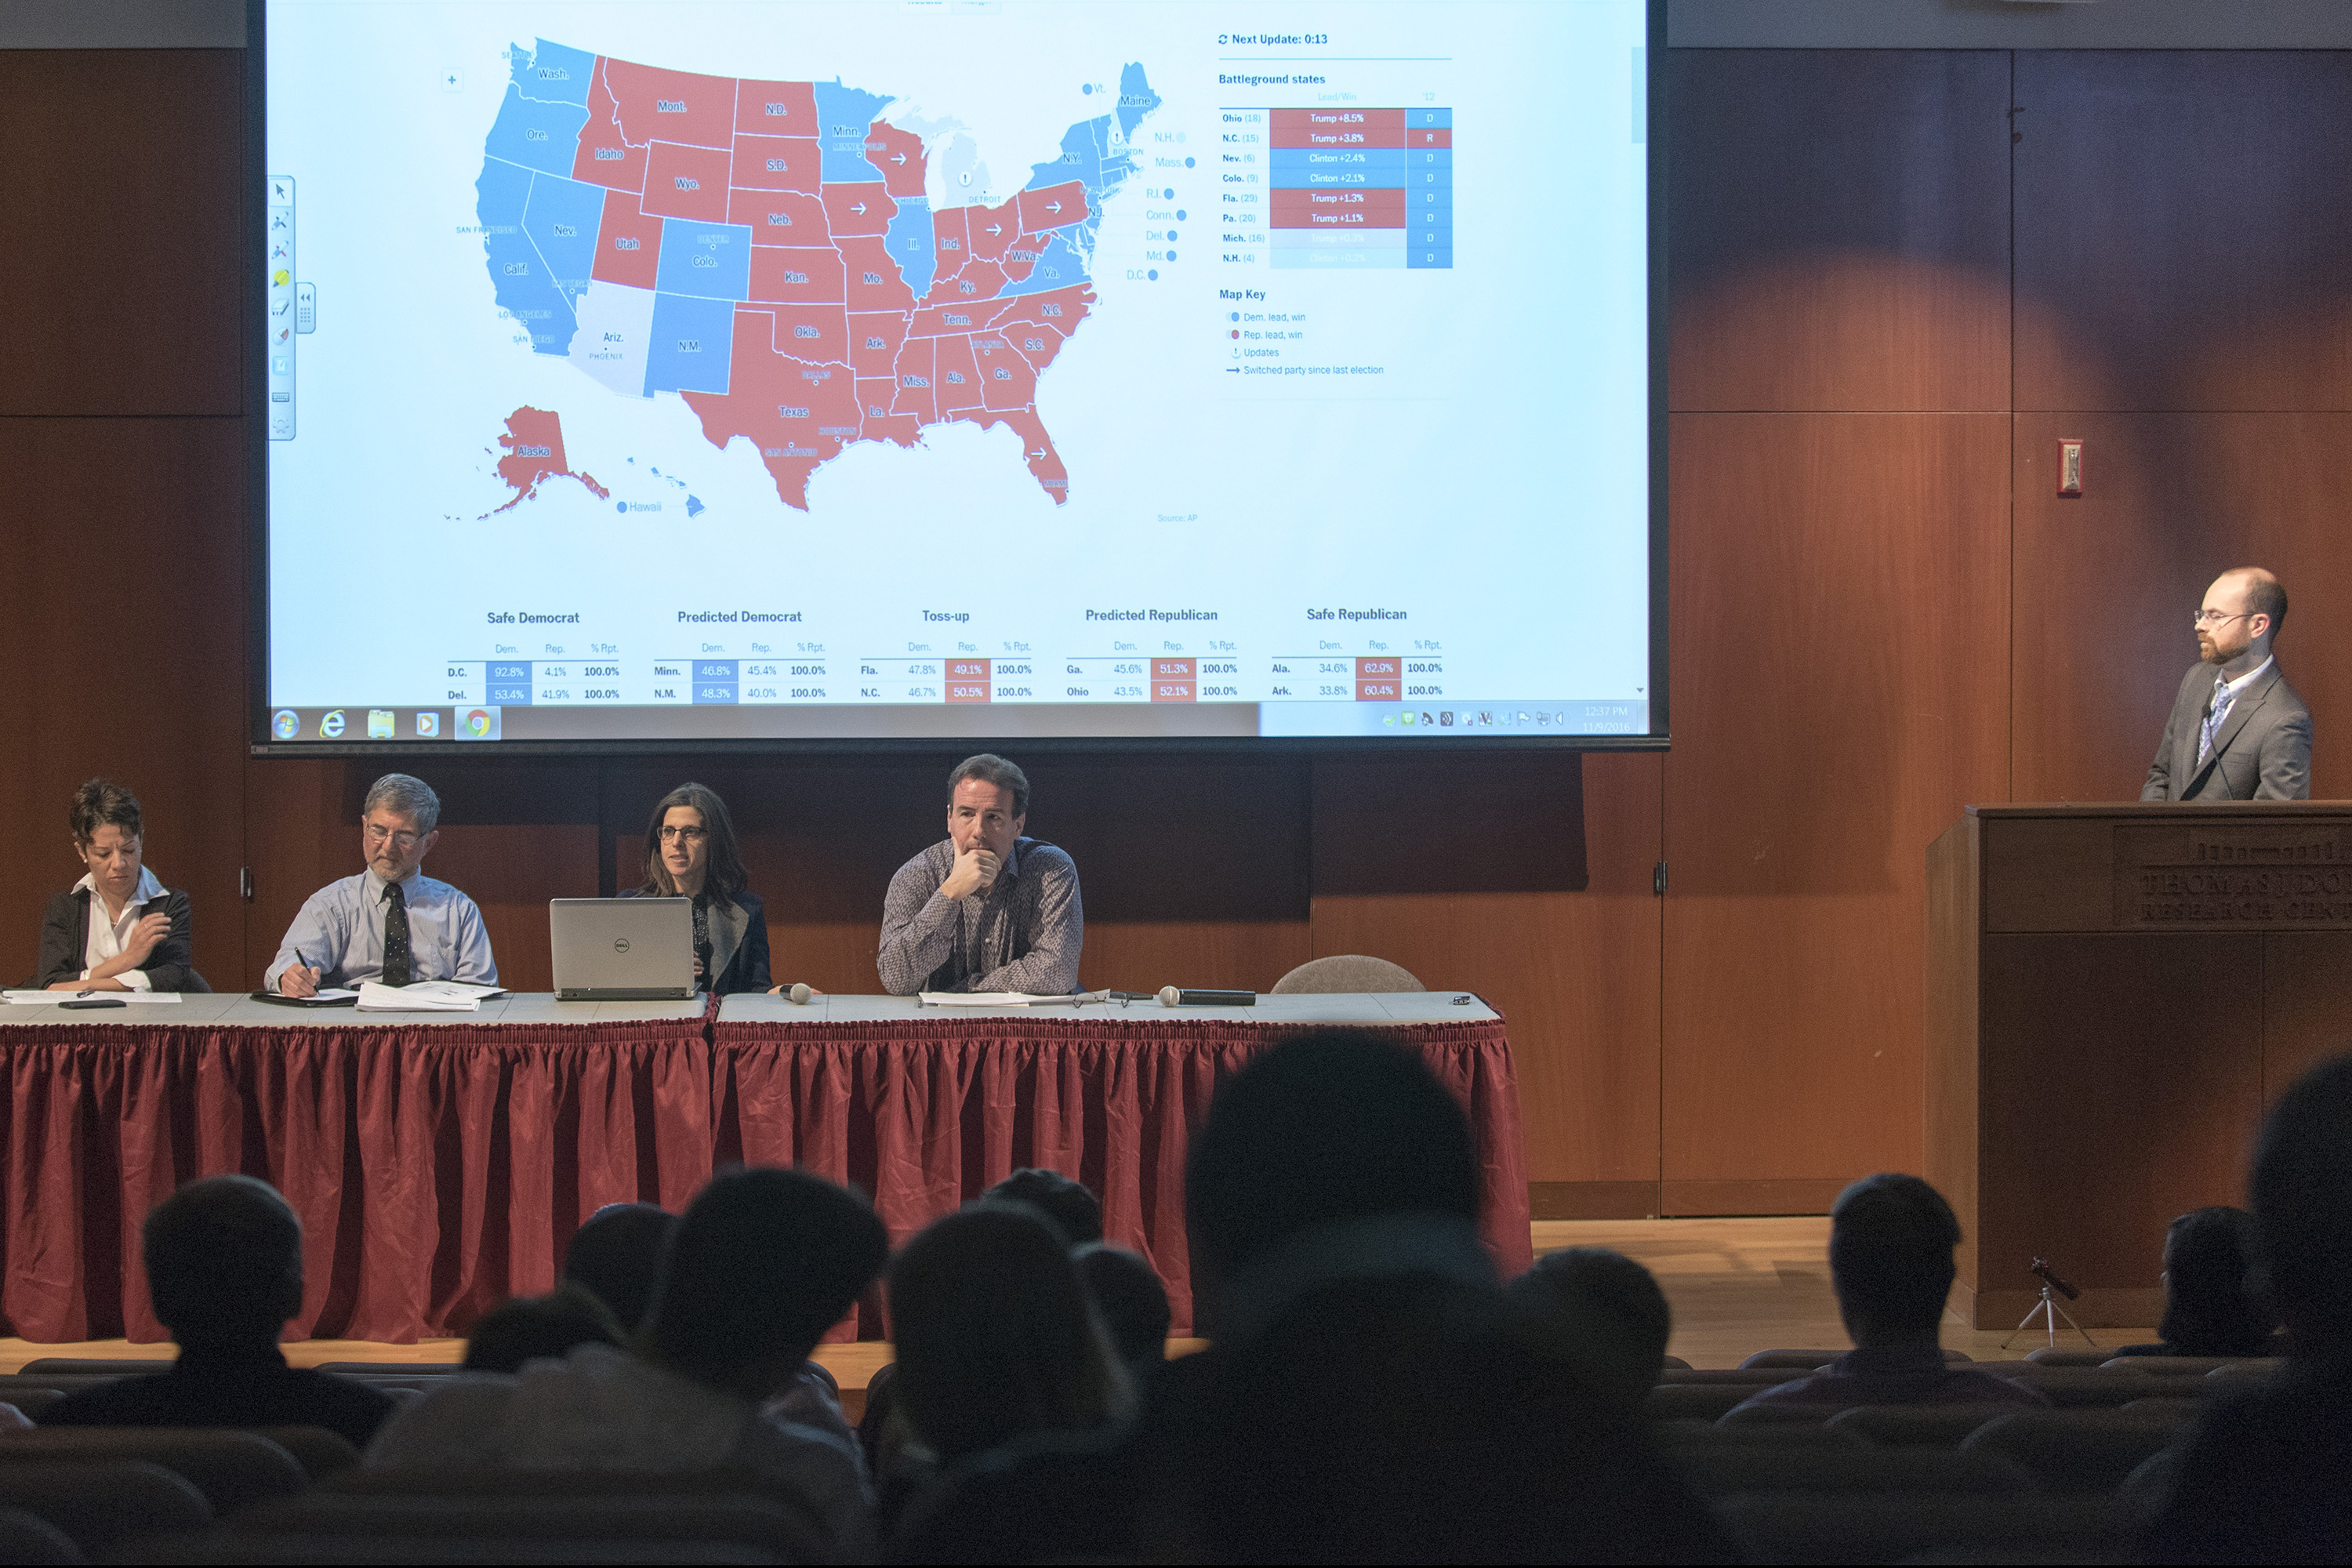 A Panel Of Political Science And Public Policy Faculty Discuss The Results Of Election 2016